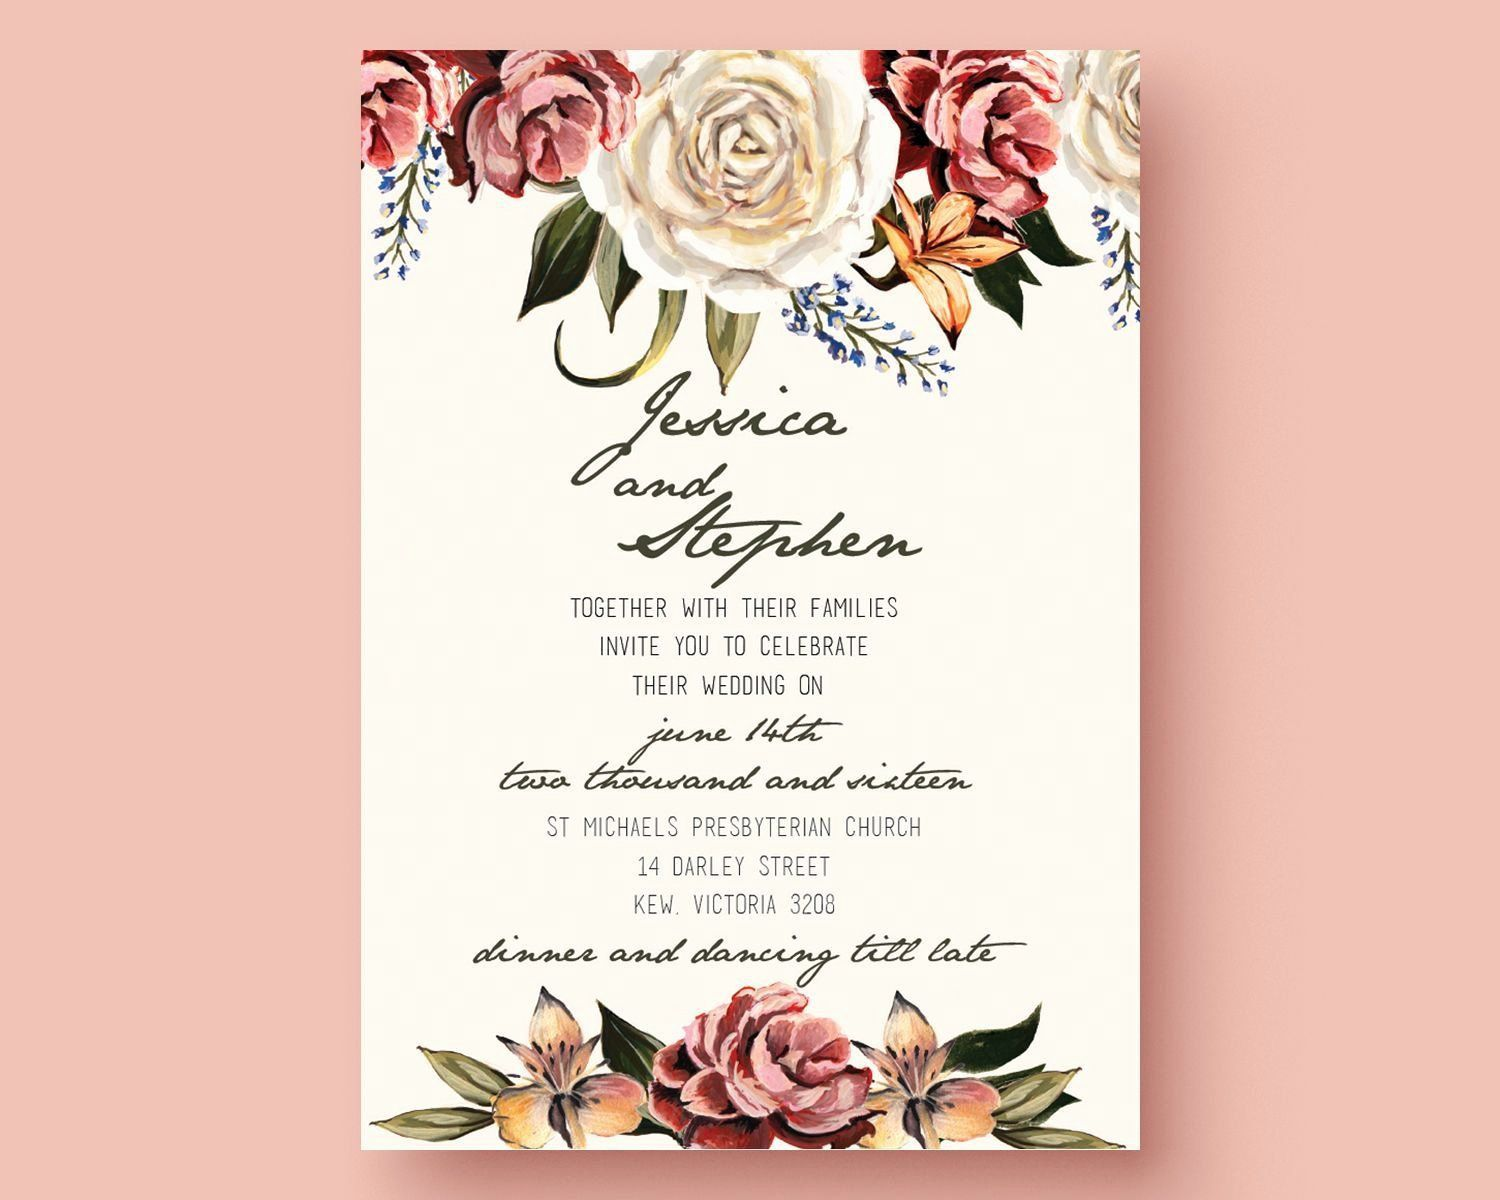 000 Magnificent Free Download Invitation Card Template Highest Quality  Templates Indian Wedding Design Software PngFull